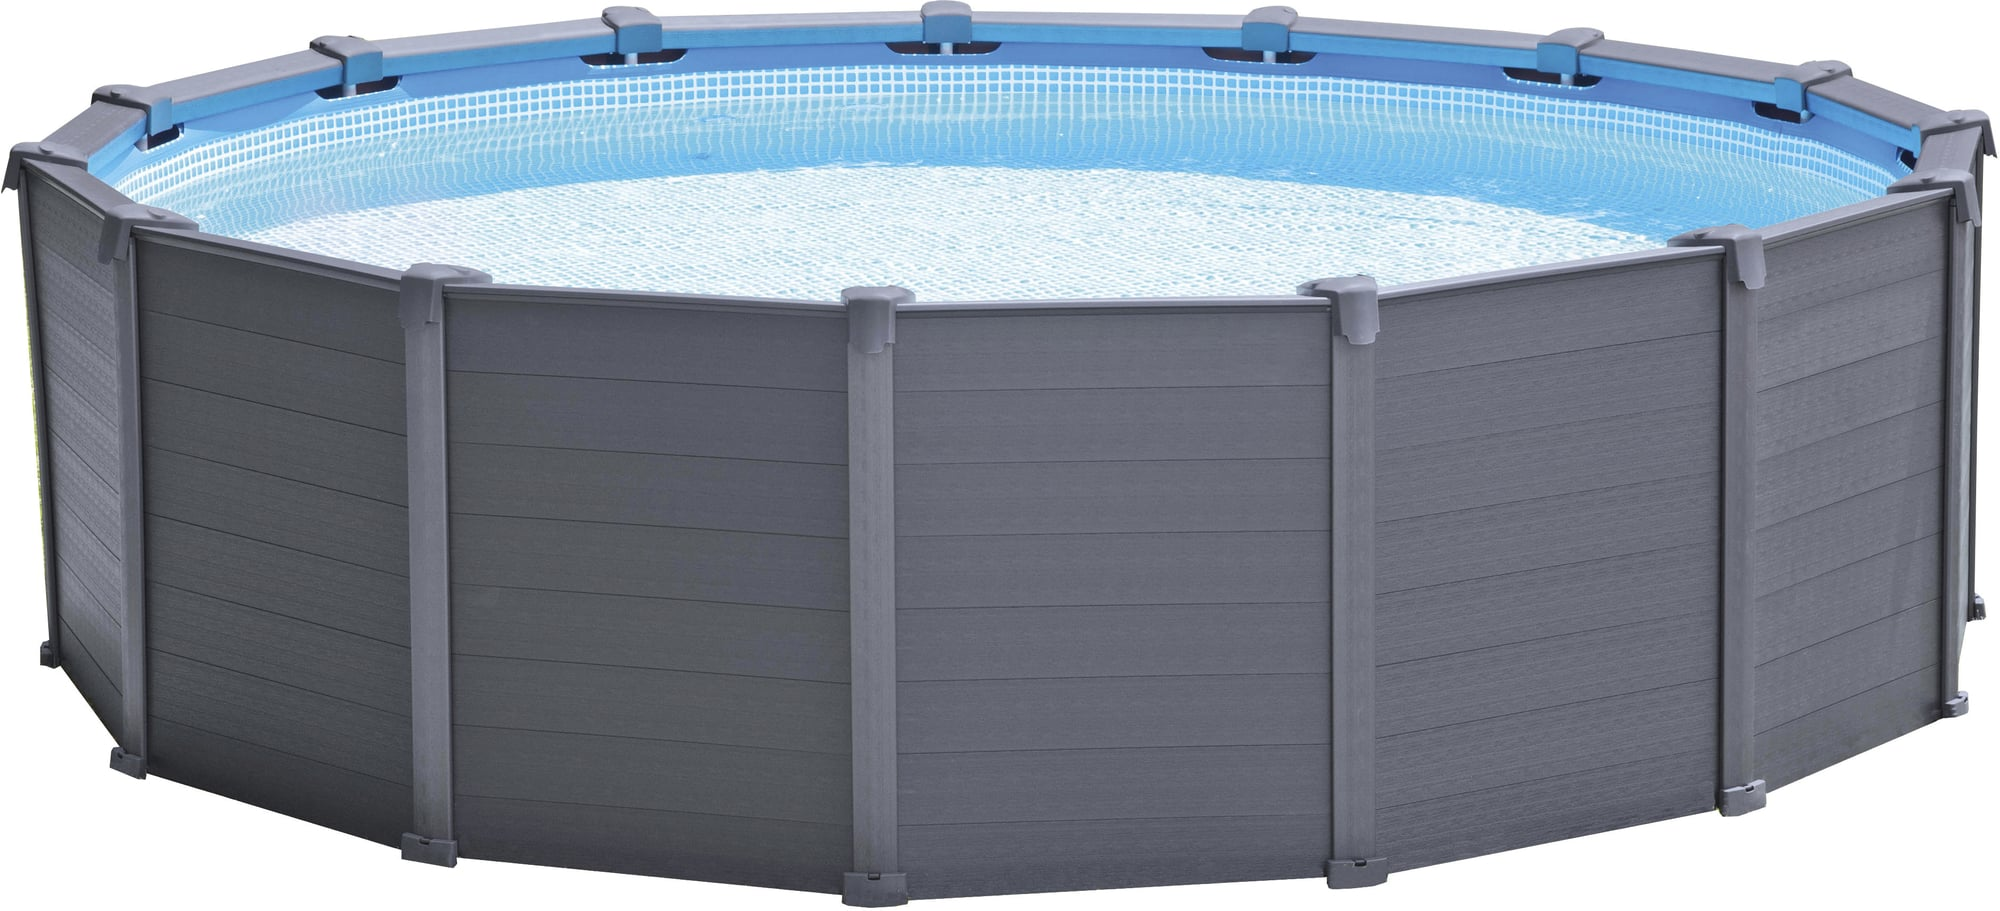 Solarplane Pool Intex Intex Frame Pool Graphit Ø 478 X 124 Cm